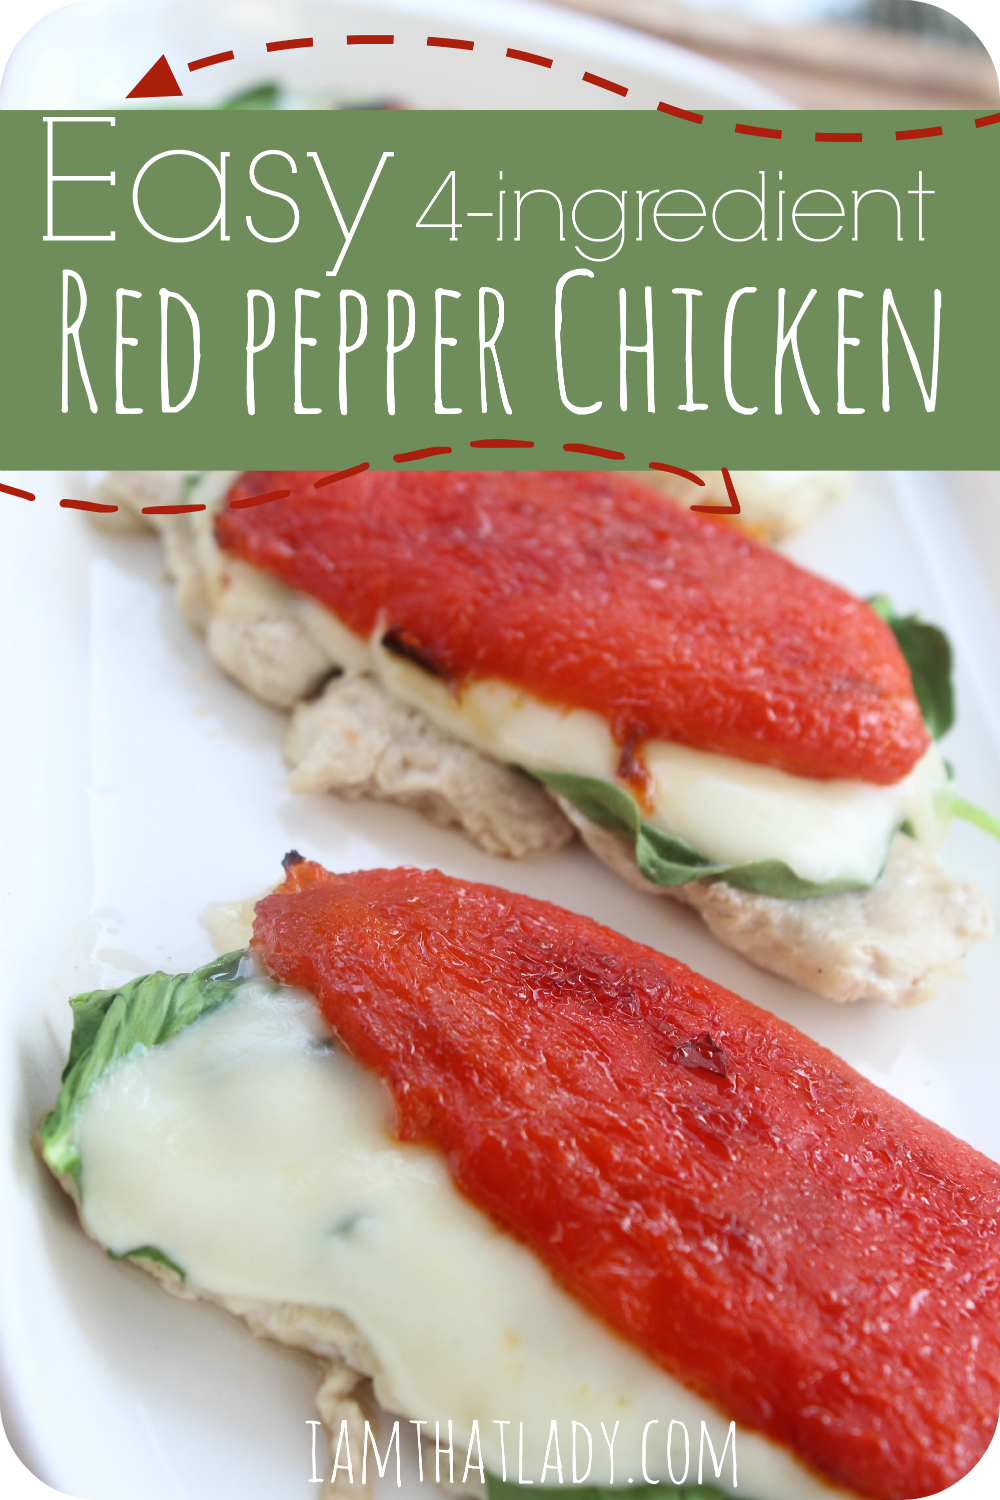 This 4 ingredient roasted red pepper chicken recipe is SO easy and delicious. With just 20 minutes you can whip this up using just 4 ingredients! A MUST TRY!!!!